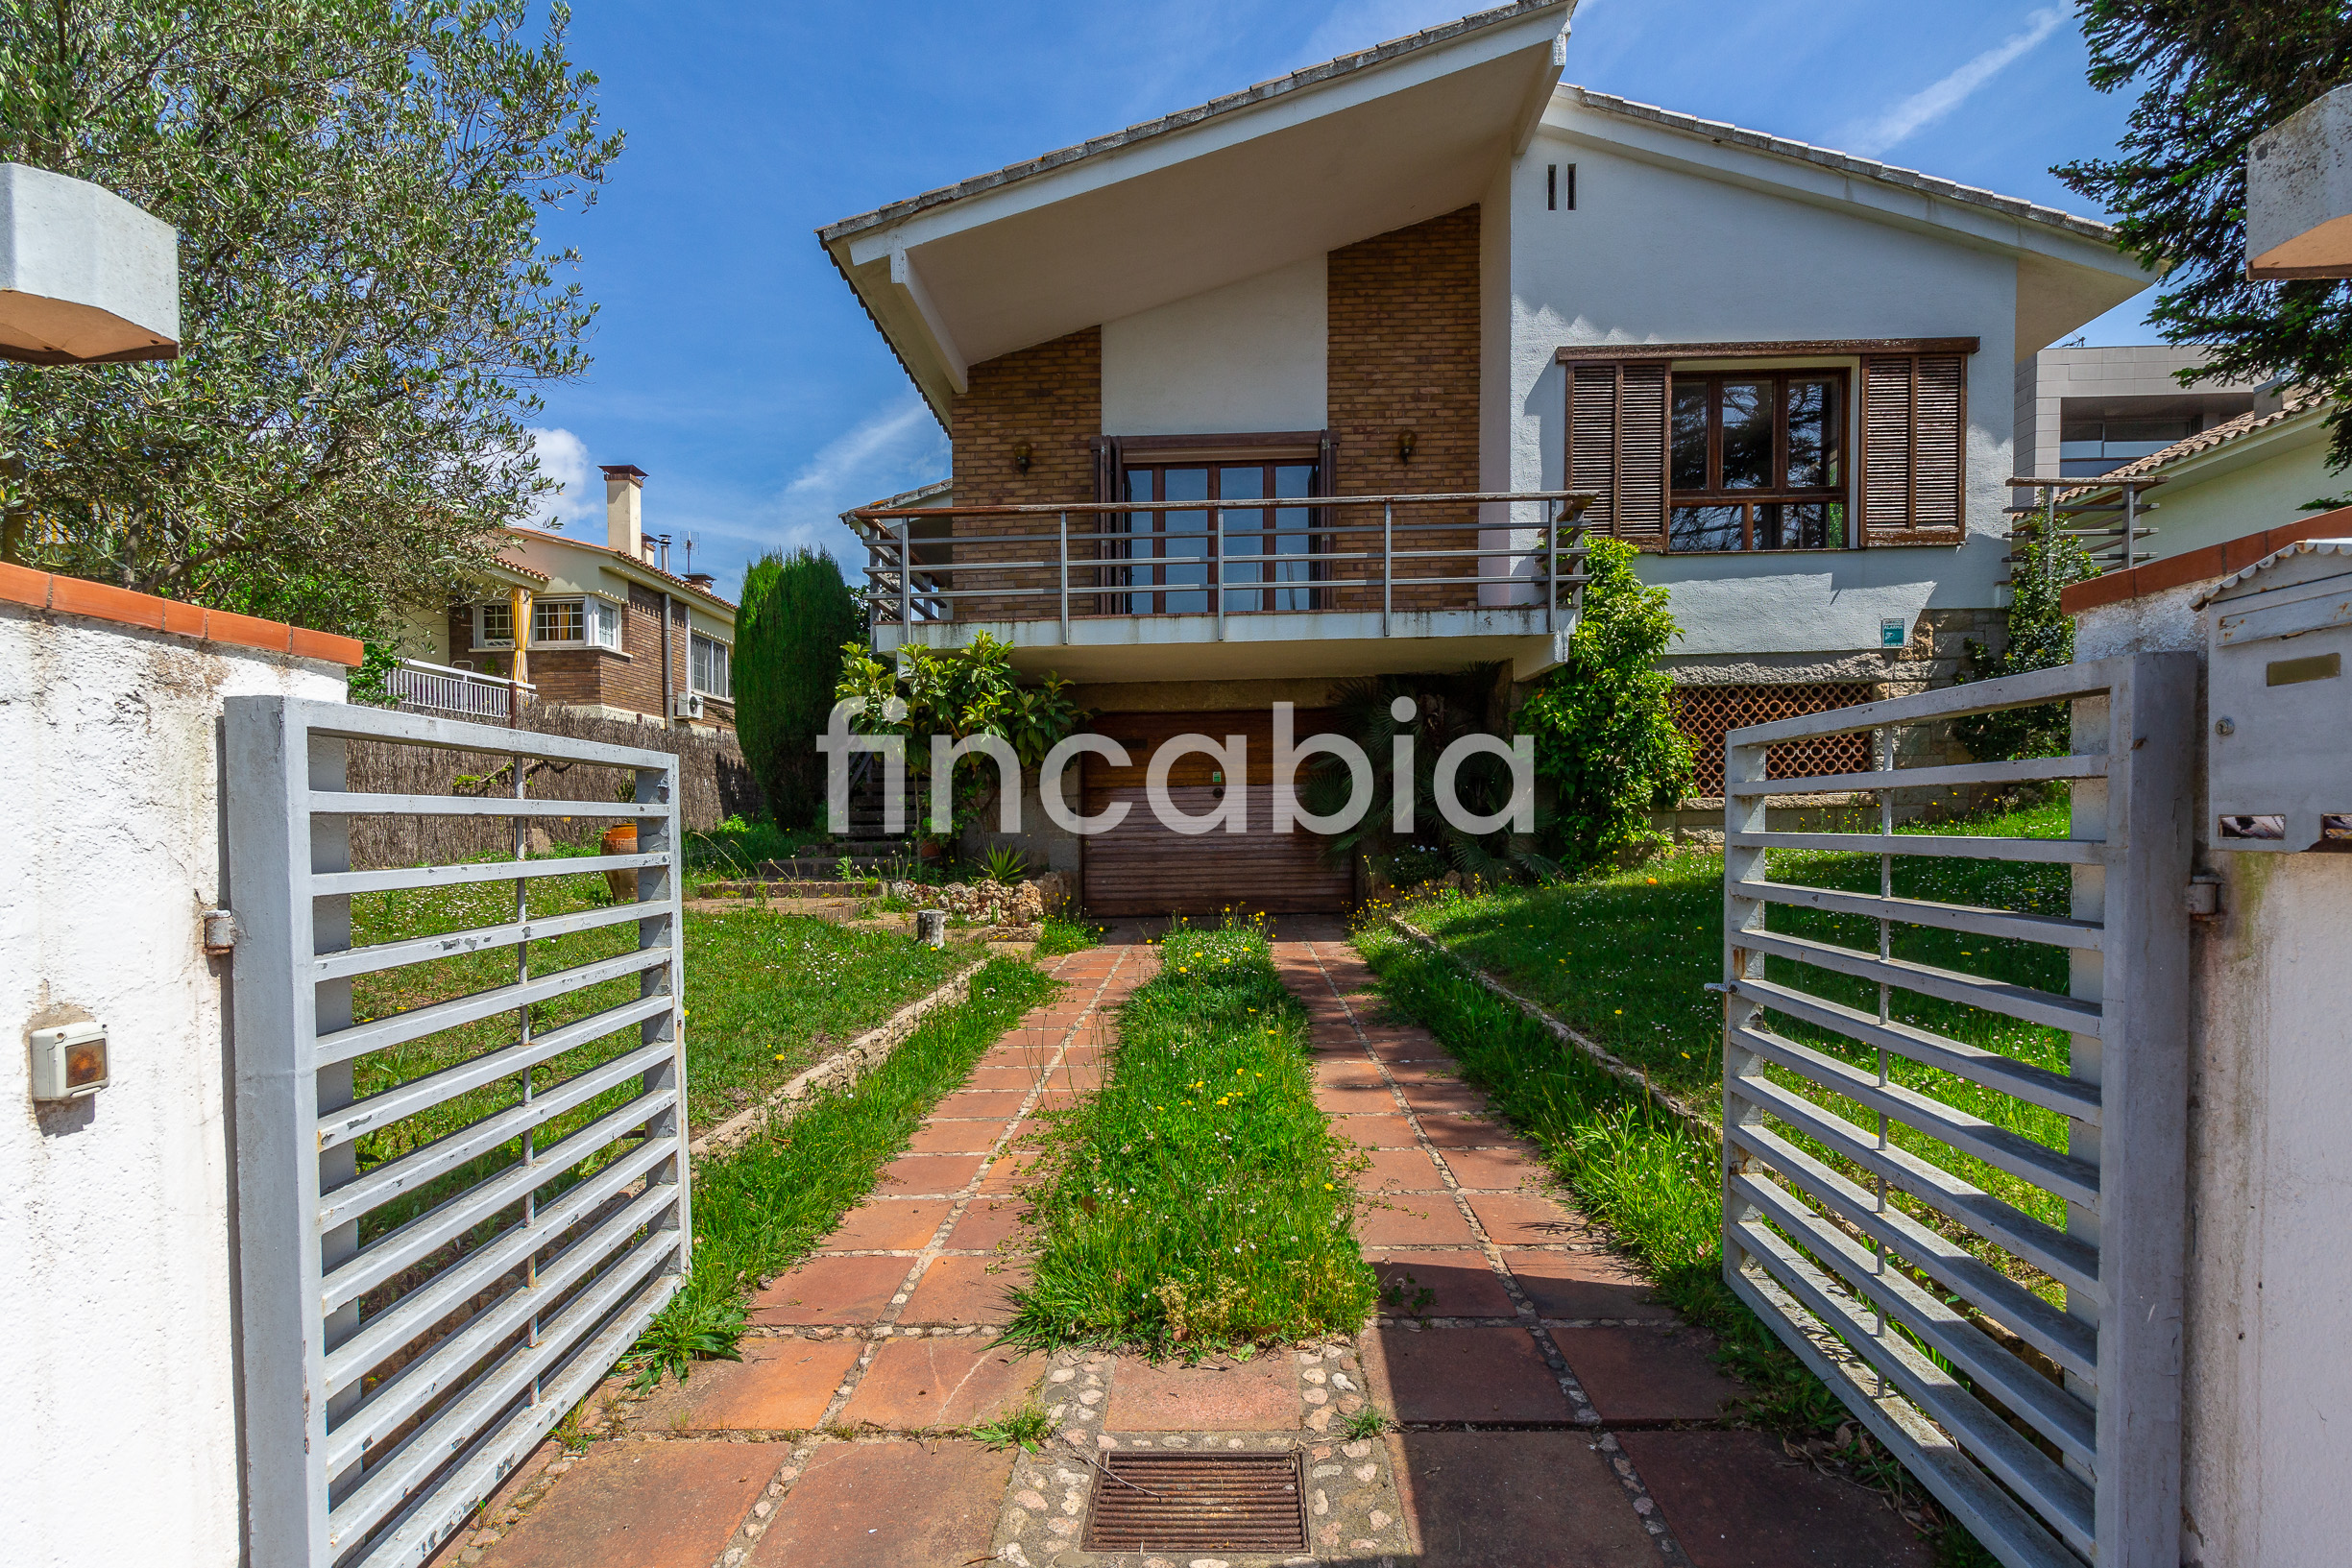 Detached house with garden for sale in Santa Coloma de Farners